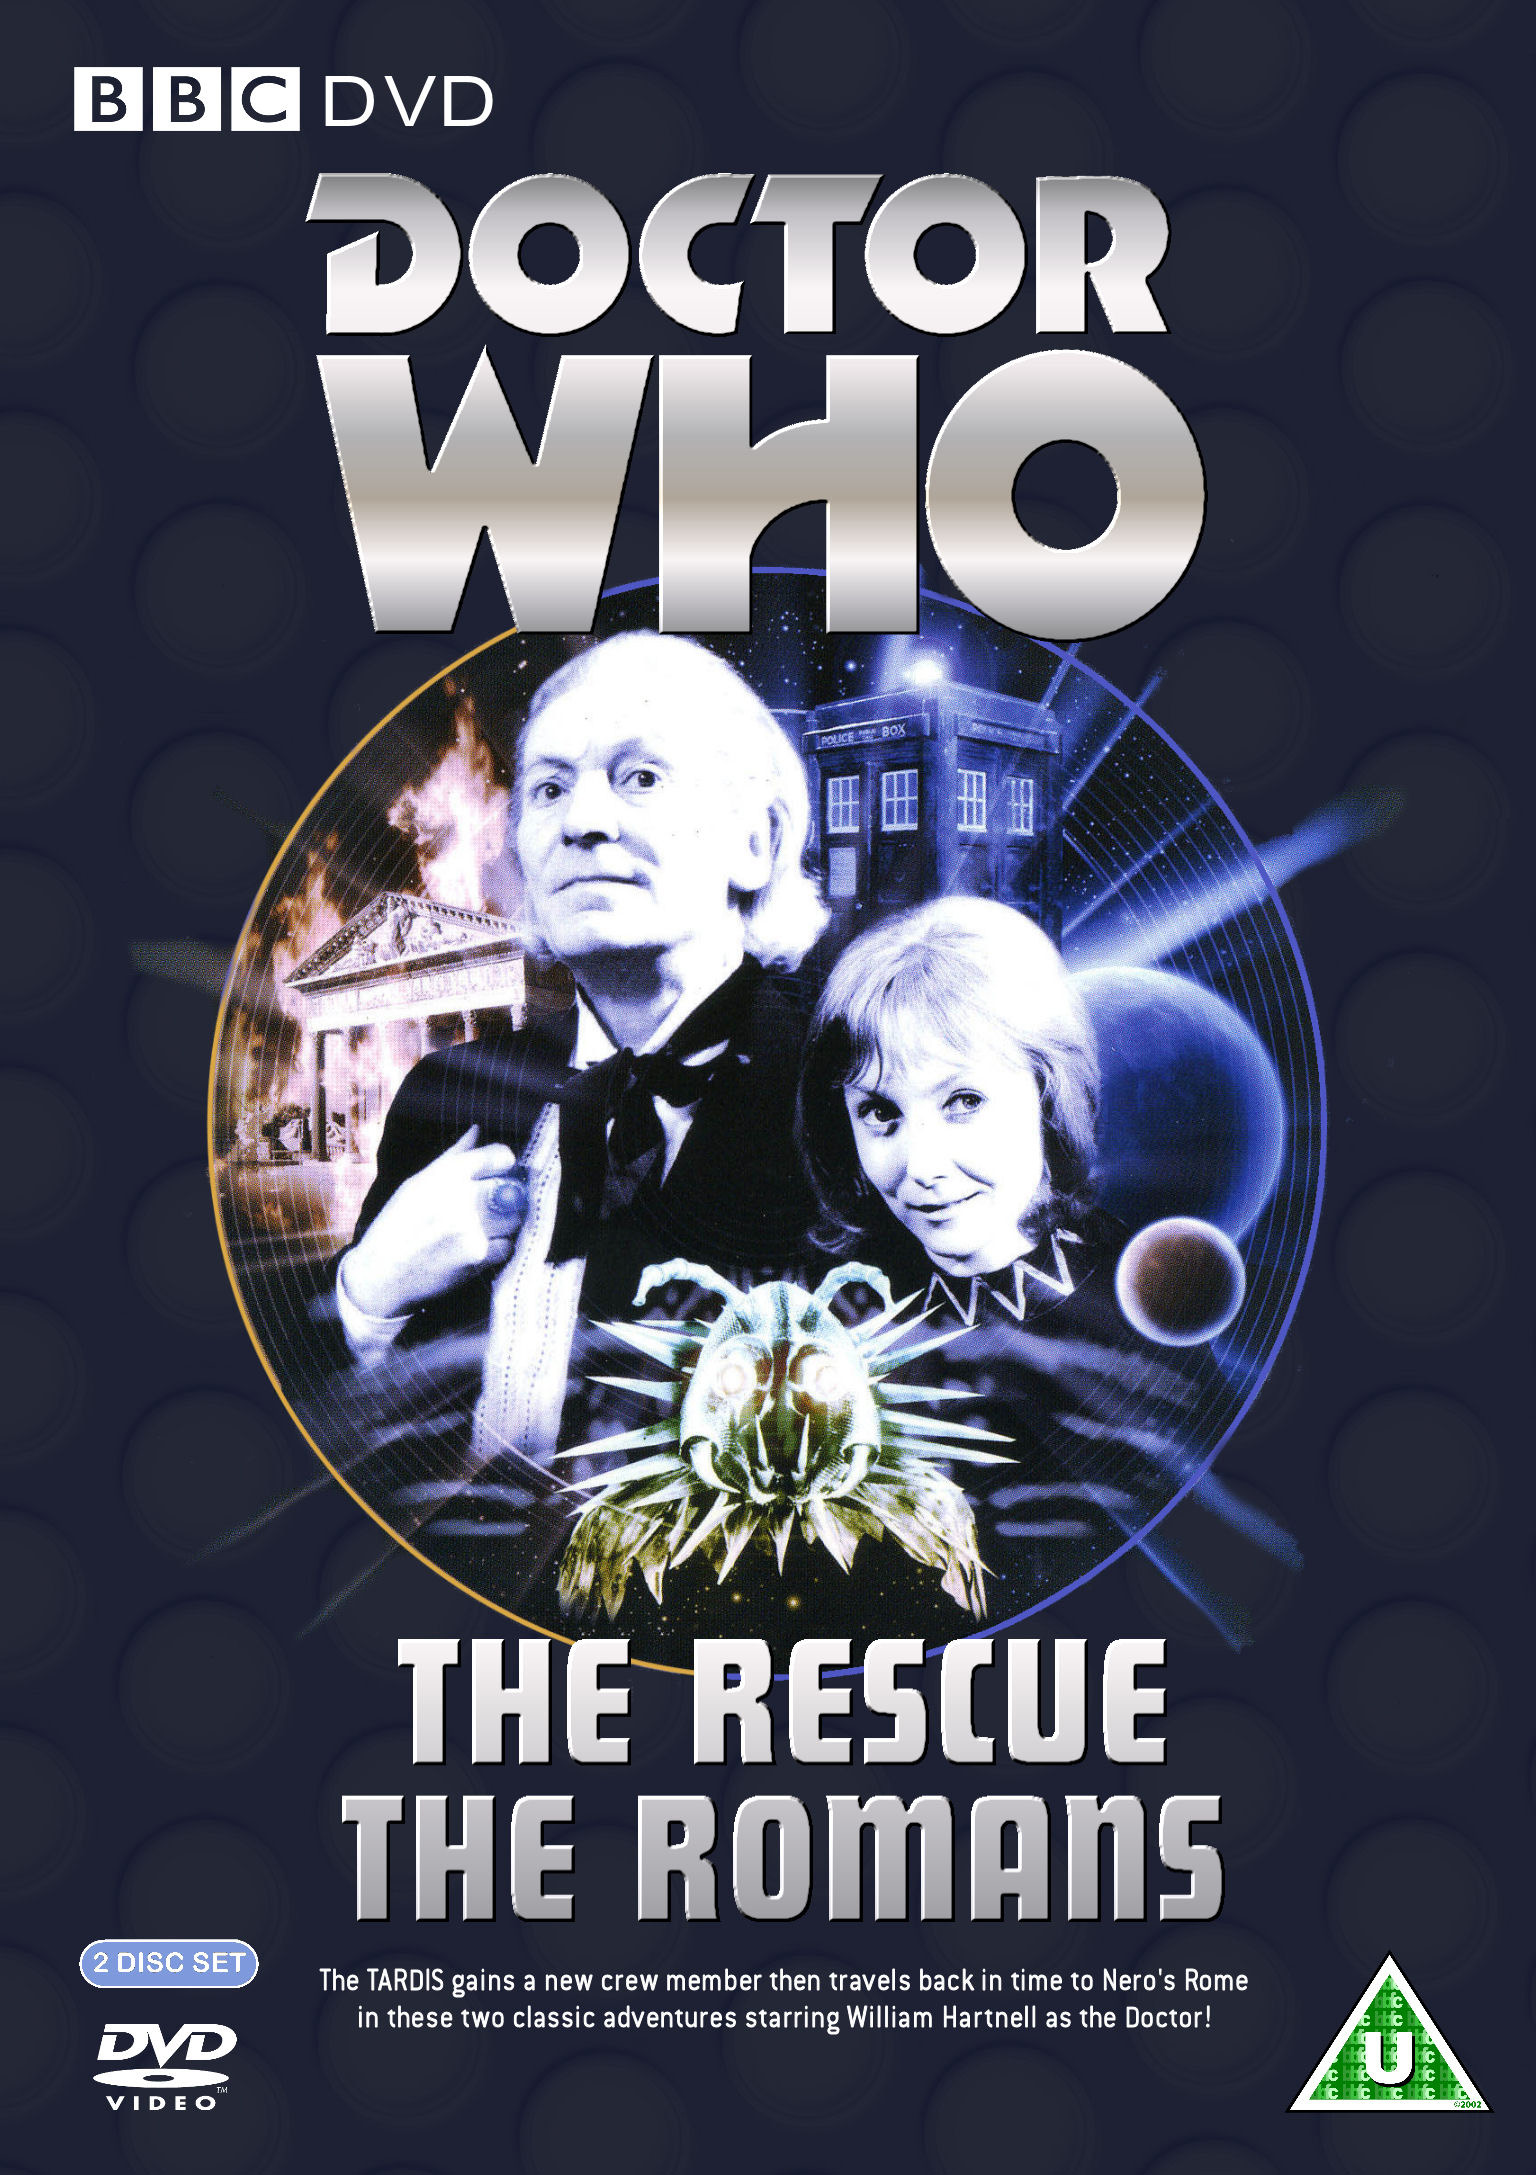 The Rescue and the Romans DVD